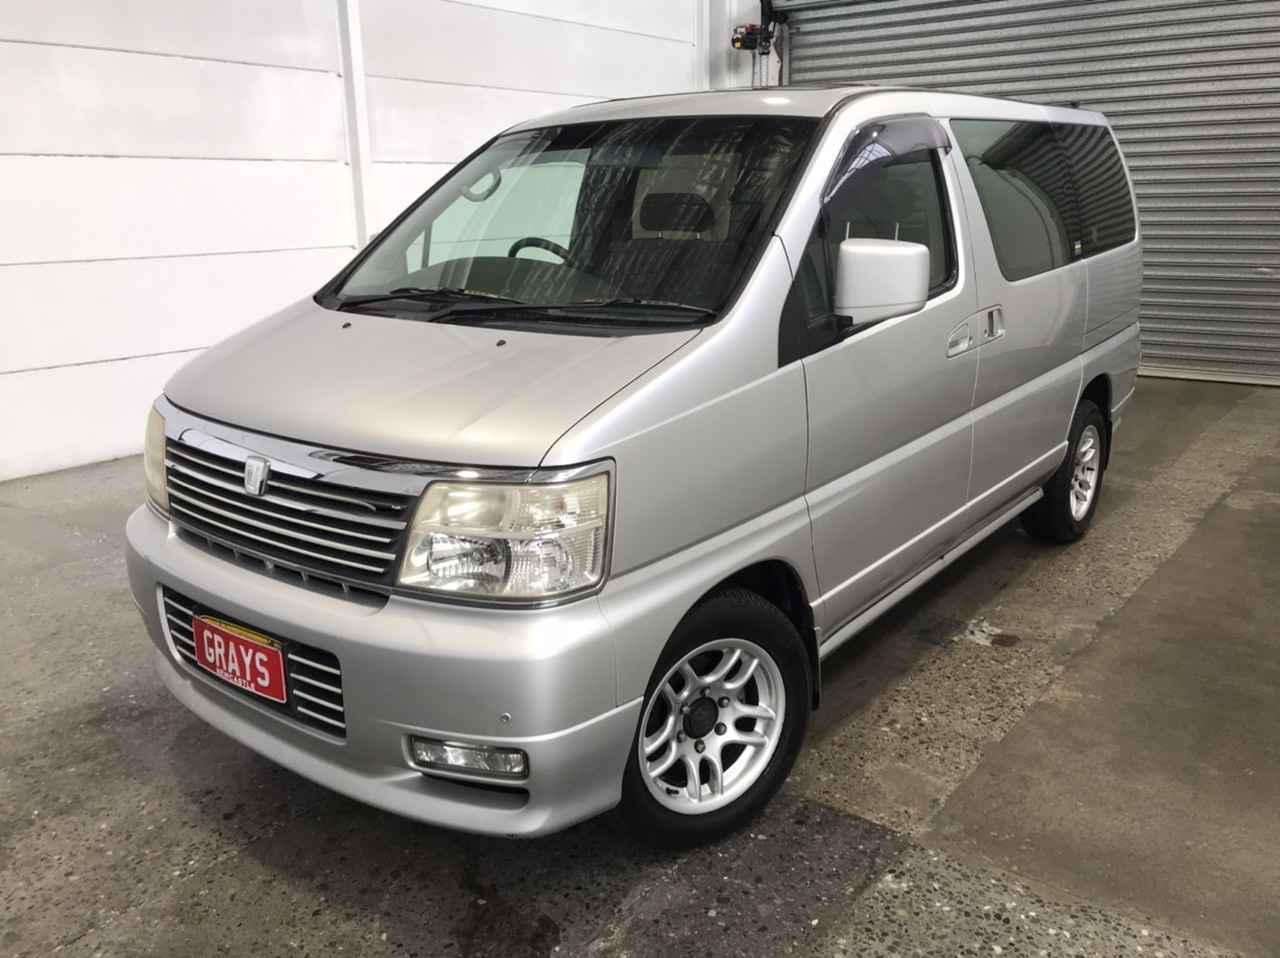 2001 Nissan Elgrand Automatic 8 Seats People Mover